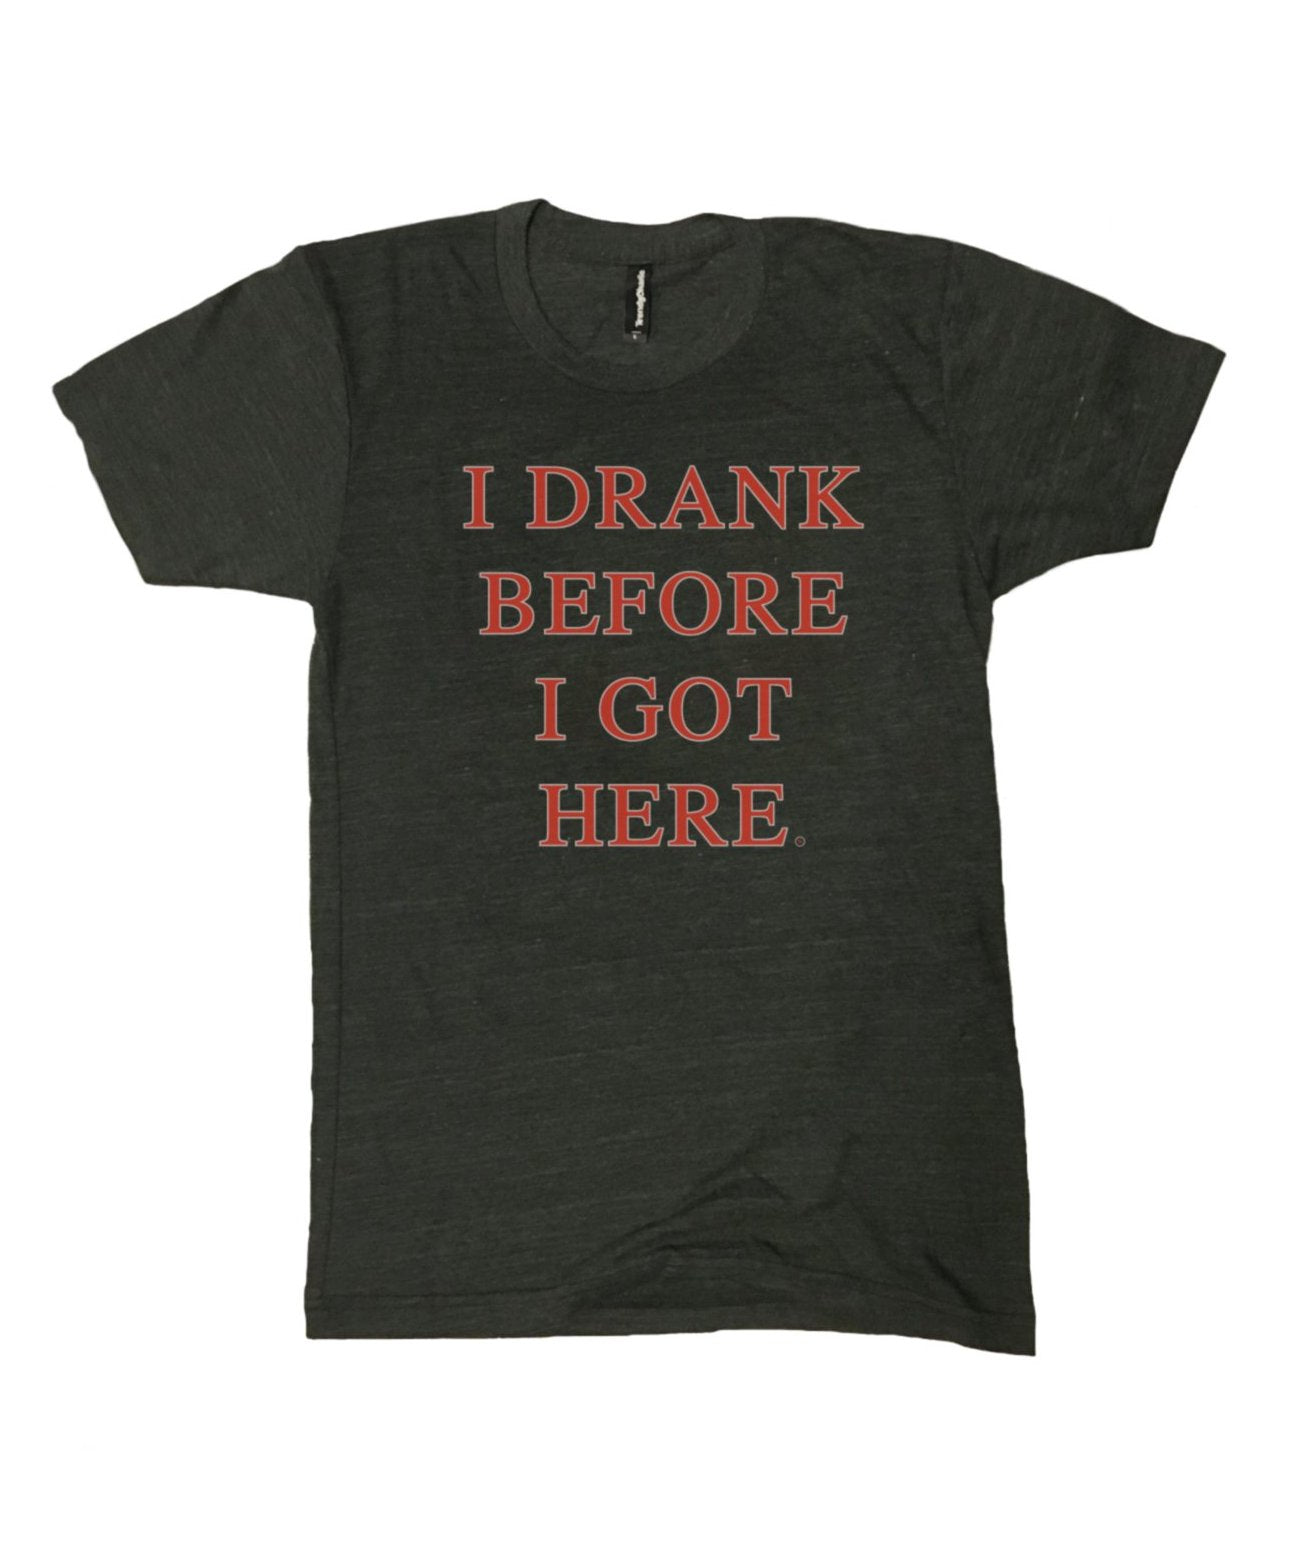 i drank before i got here shirt